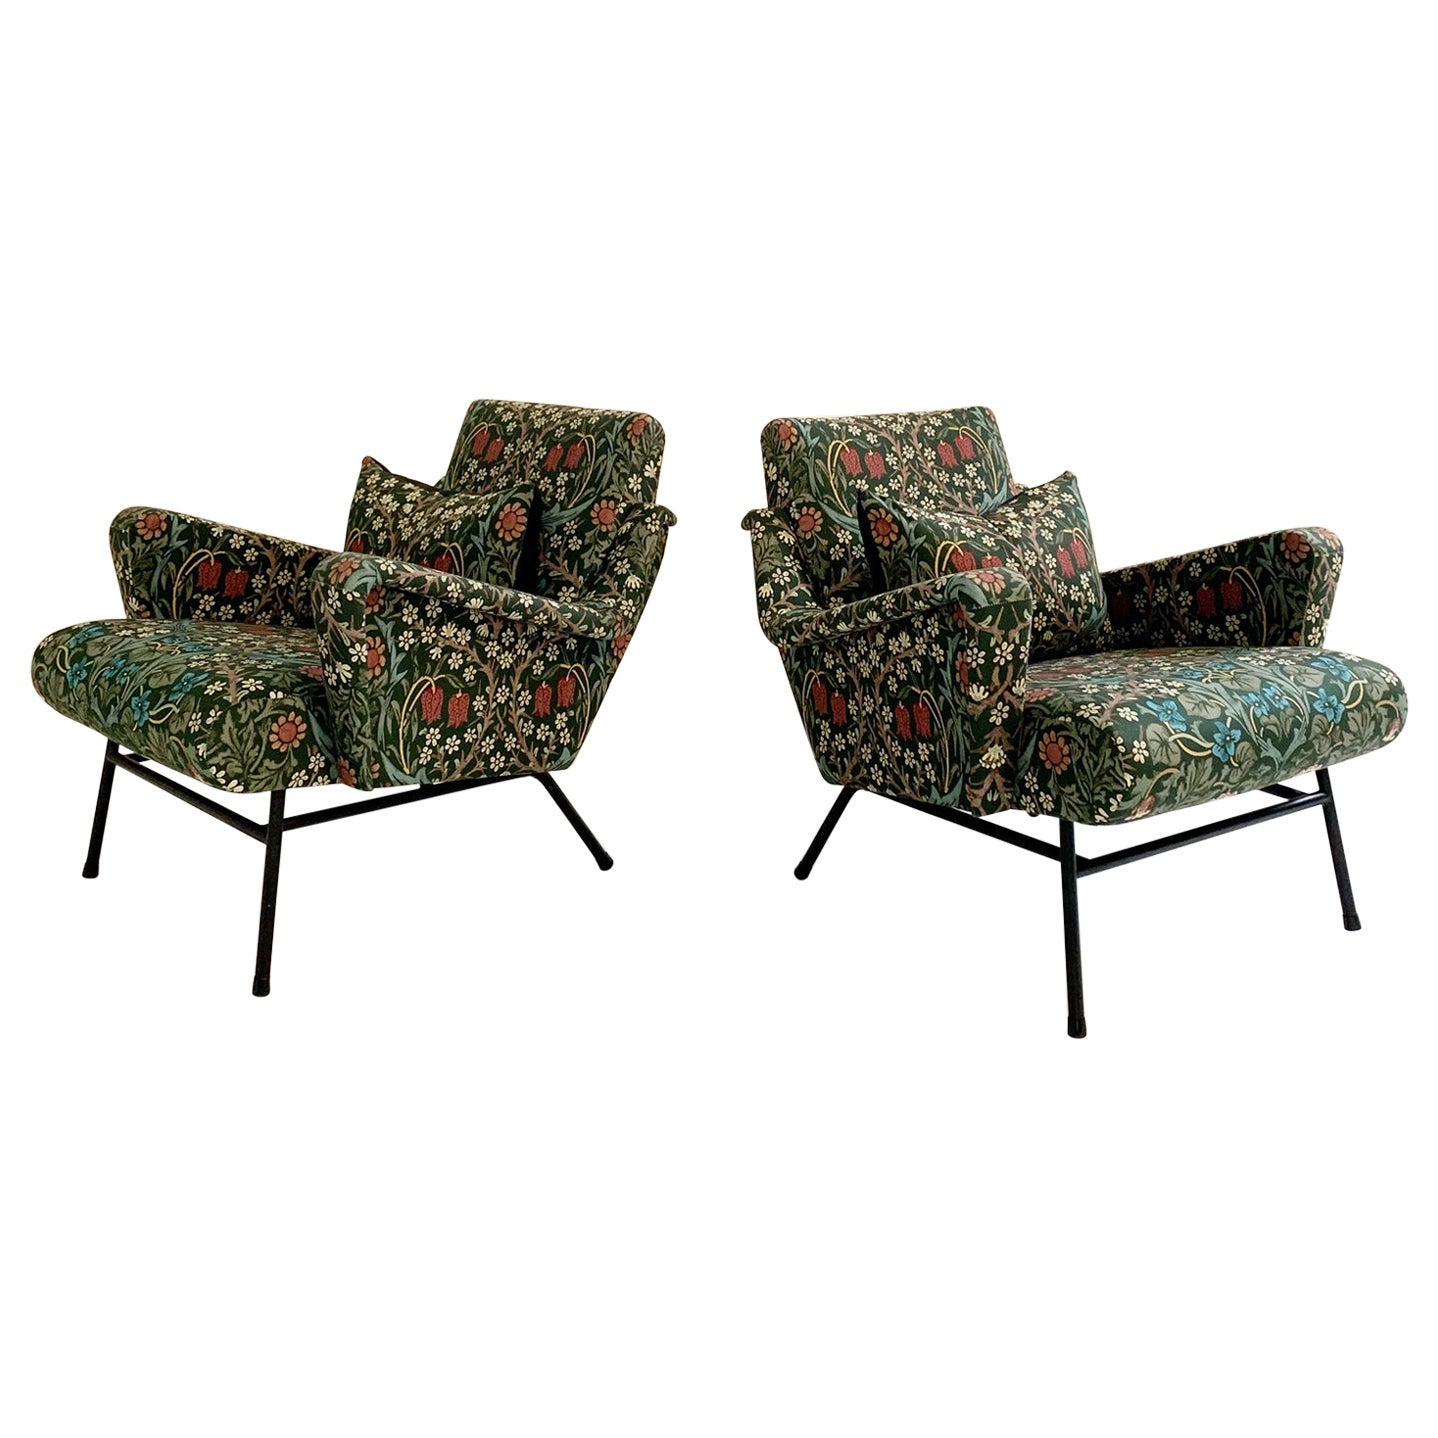 Midcentury French Lounge Chairs in William Morris Blackthorn, Pair